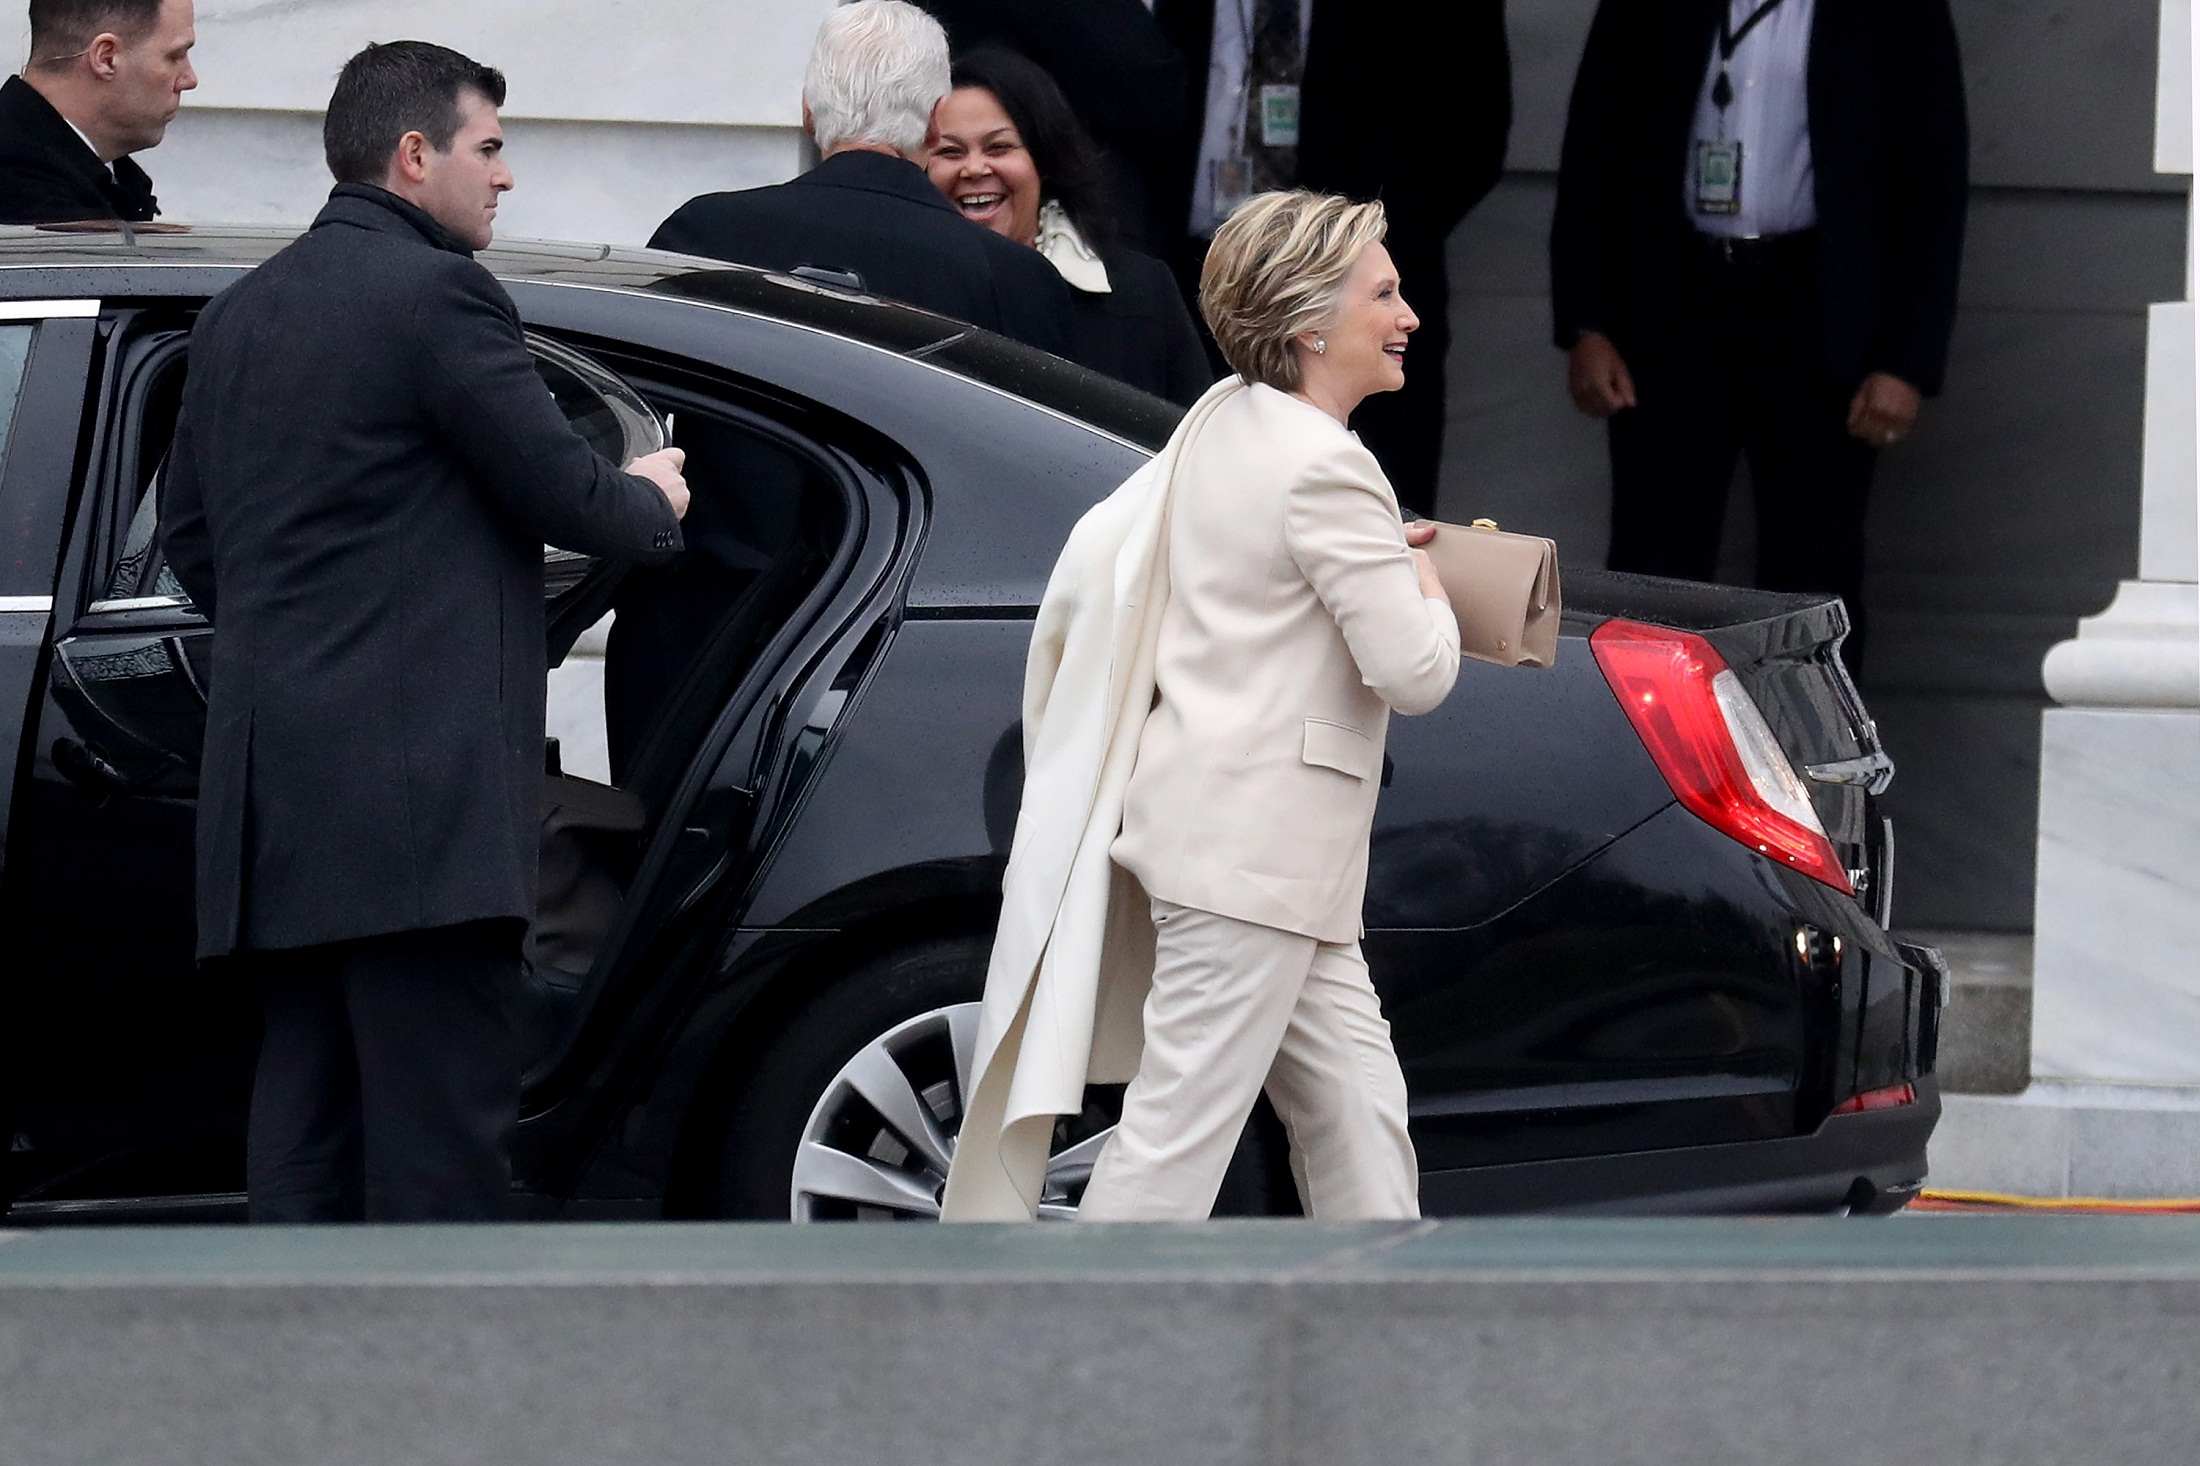 WASHINGTON, DC - JANUARY 20: Hillary Clinton arrives at the U.S. Capitol on January 20, 2017 in Washington, DC. In today's inauguration ceremony Donald J. Trump becomes the 45th president of the United States.   Rob Carr/Getty Images/AFP